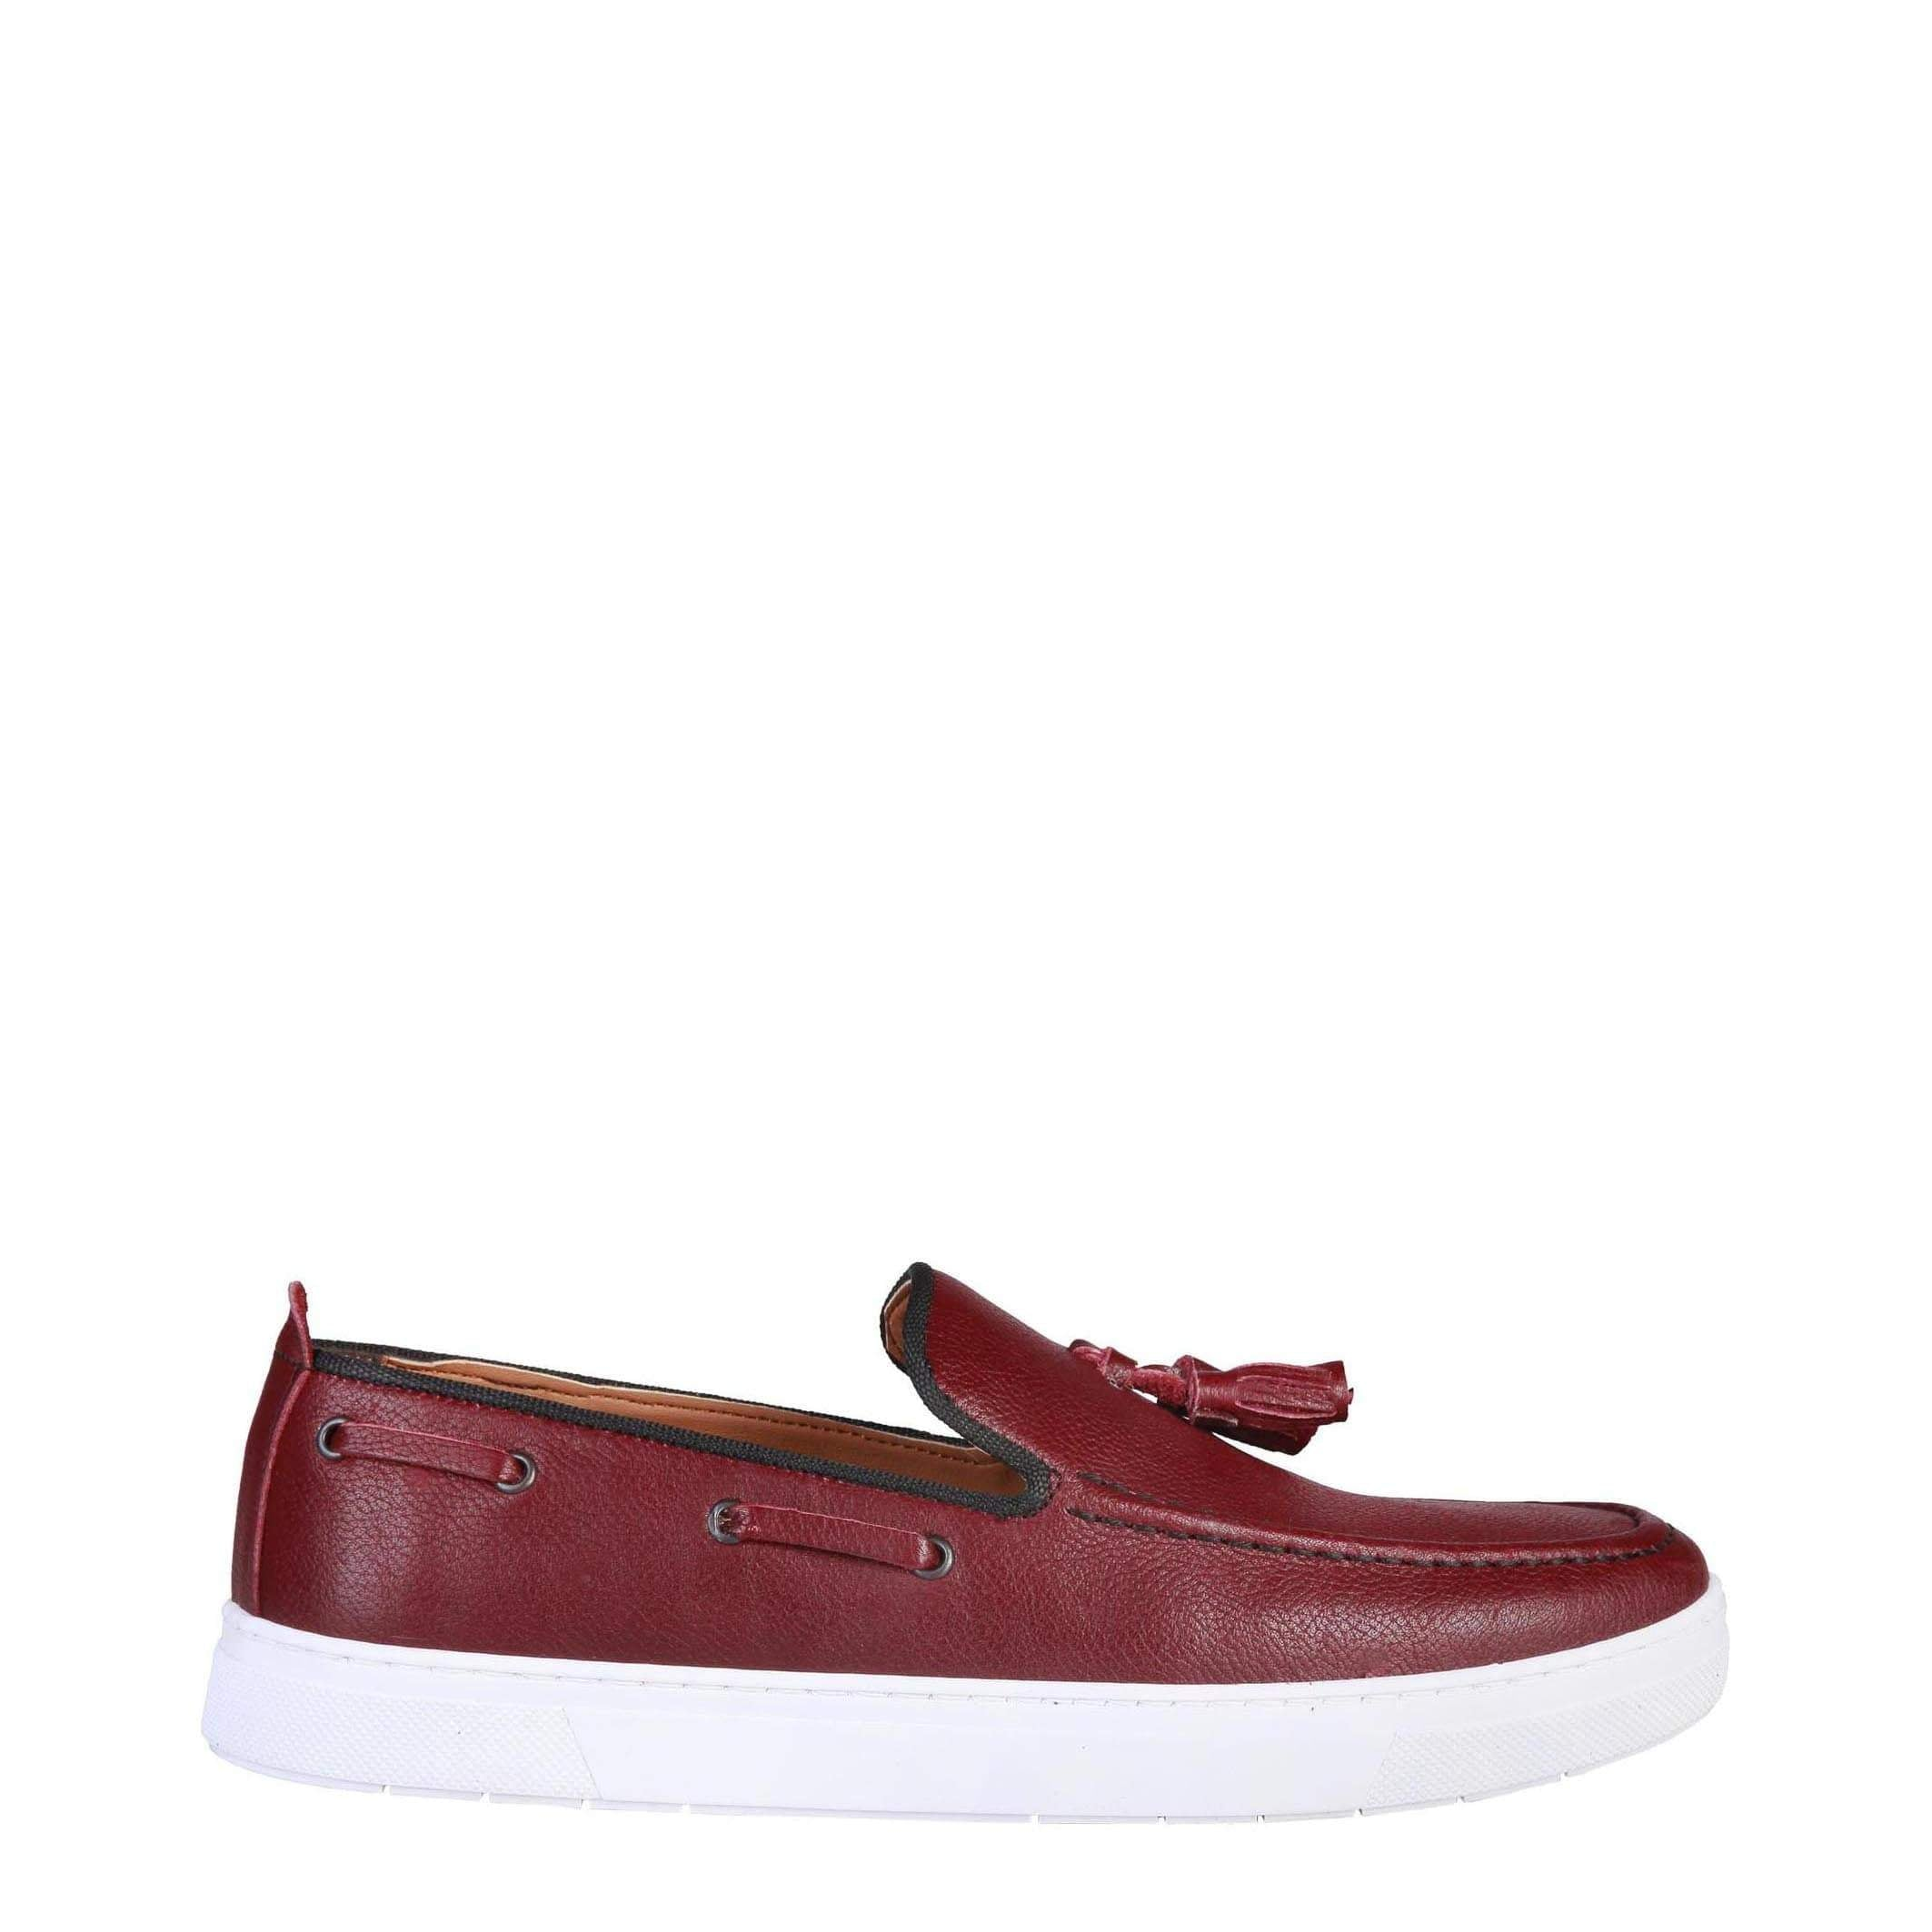 Pierre Cardin Shoes Moccasins red / EU 40 Pierre Cardin - BERNARD